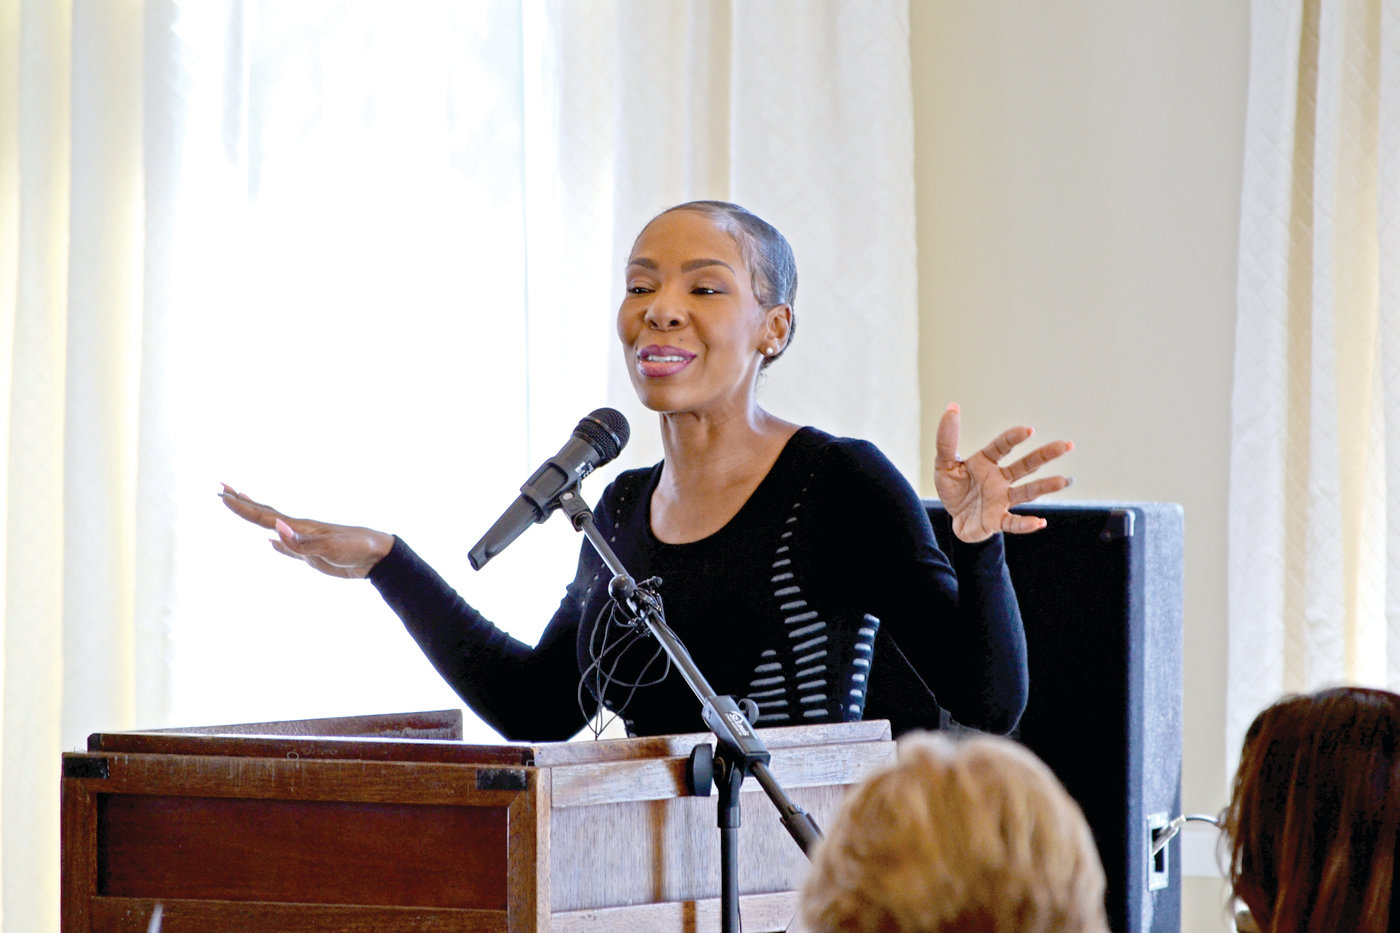 SURVIVAL STORY: Drea Kelly, ex-wife of embattled R&B superstar R. Kelly, brought her advocacy against domestic violence to Warwick on Wednesday at Warwick Country Club, as part of the 40th anniversary celebration of the Elizabeth Buffum Chace Center.